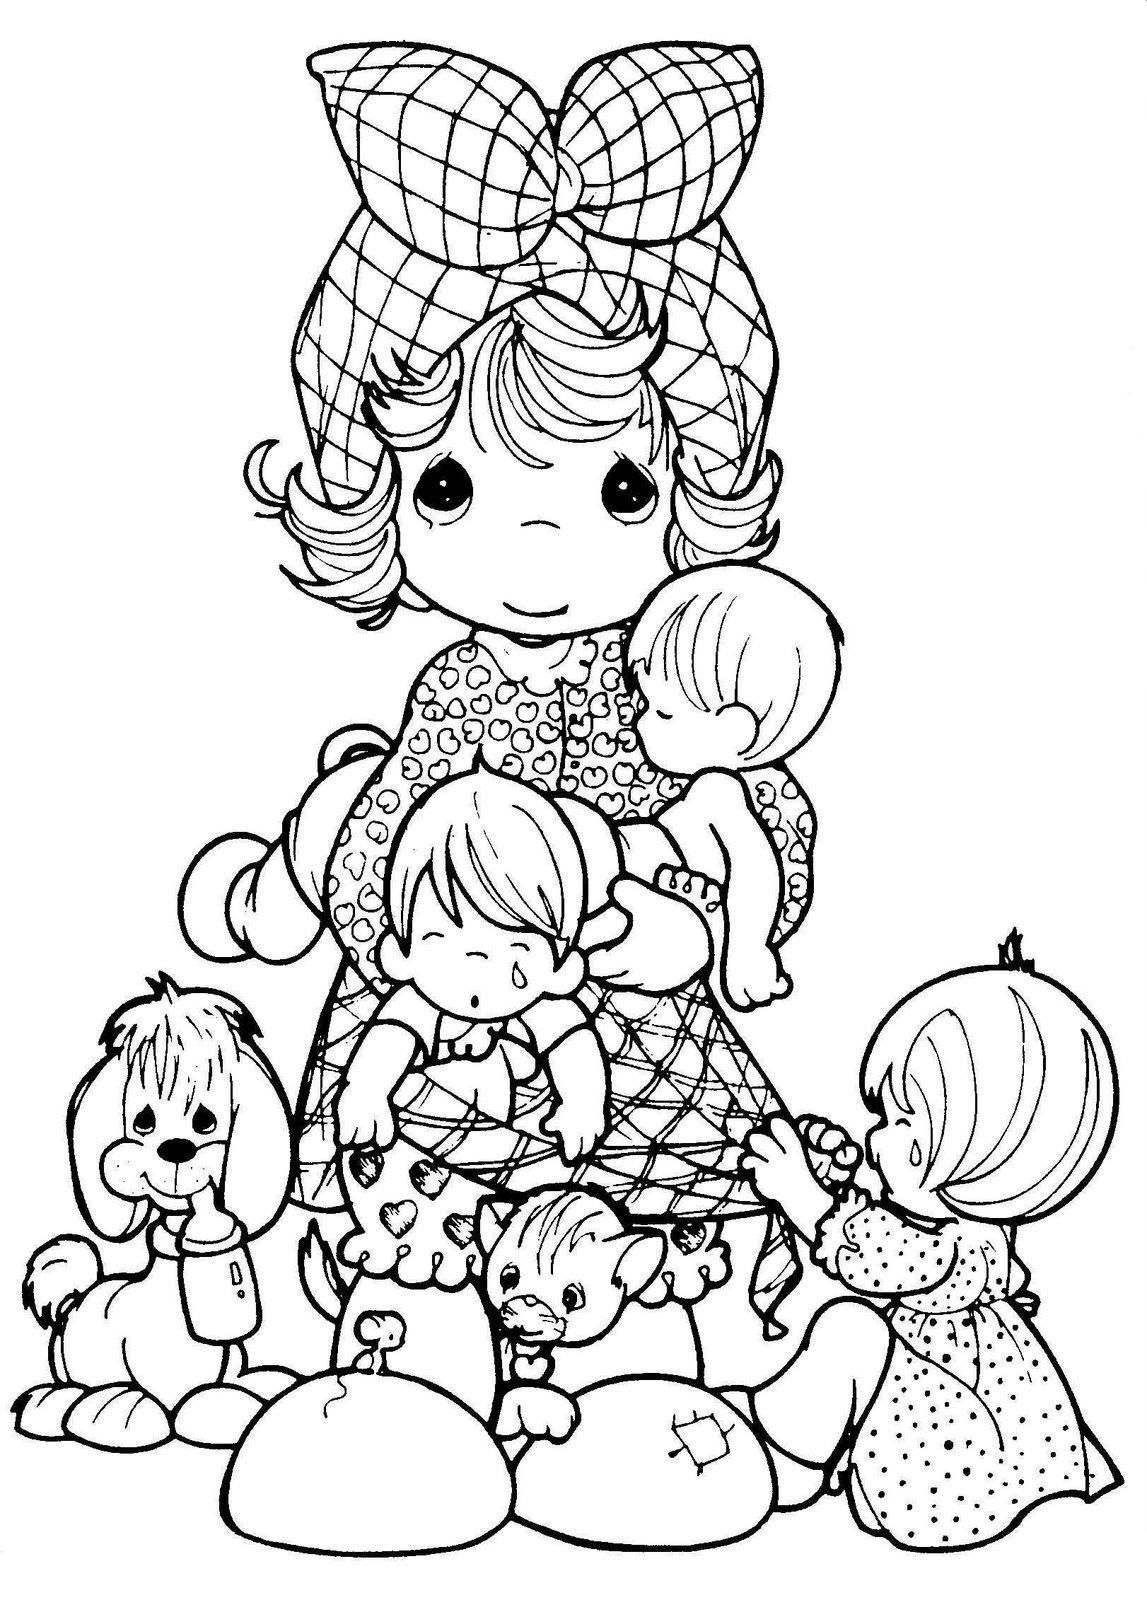 coloring pages for adults hd elephant coloring book coloring picture hd for kids hd for coloring pages adults